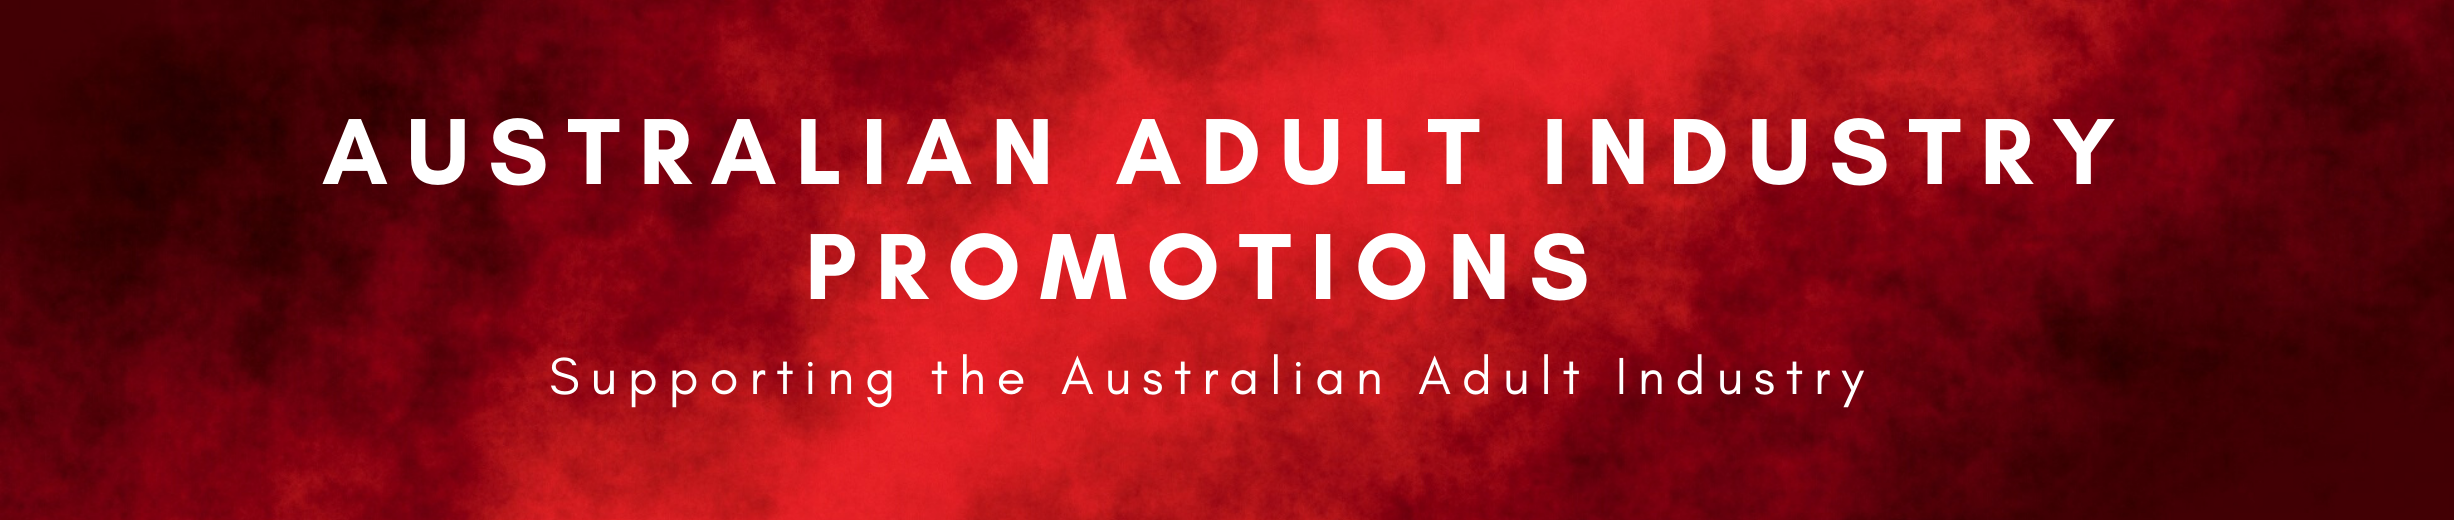 Australian Adult Industry Promotions